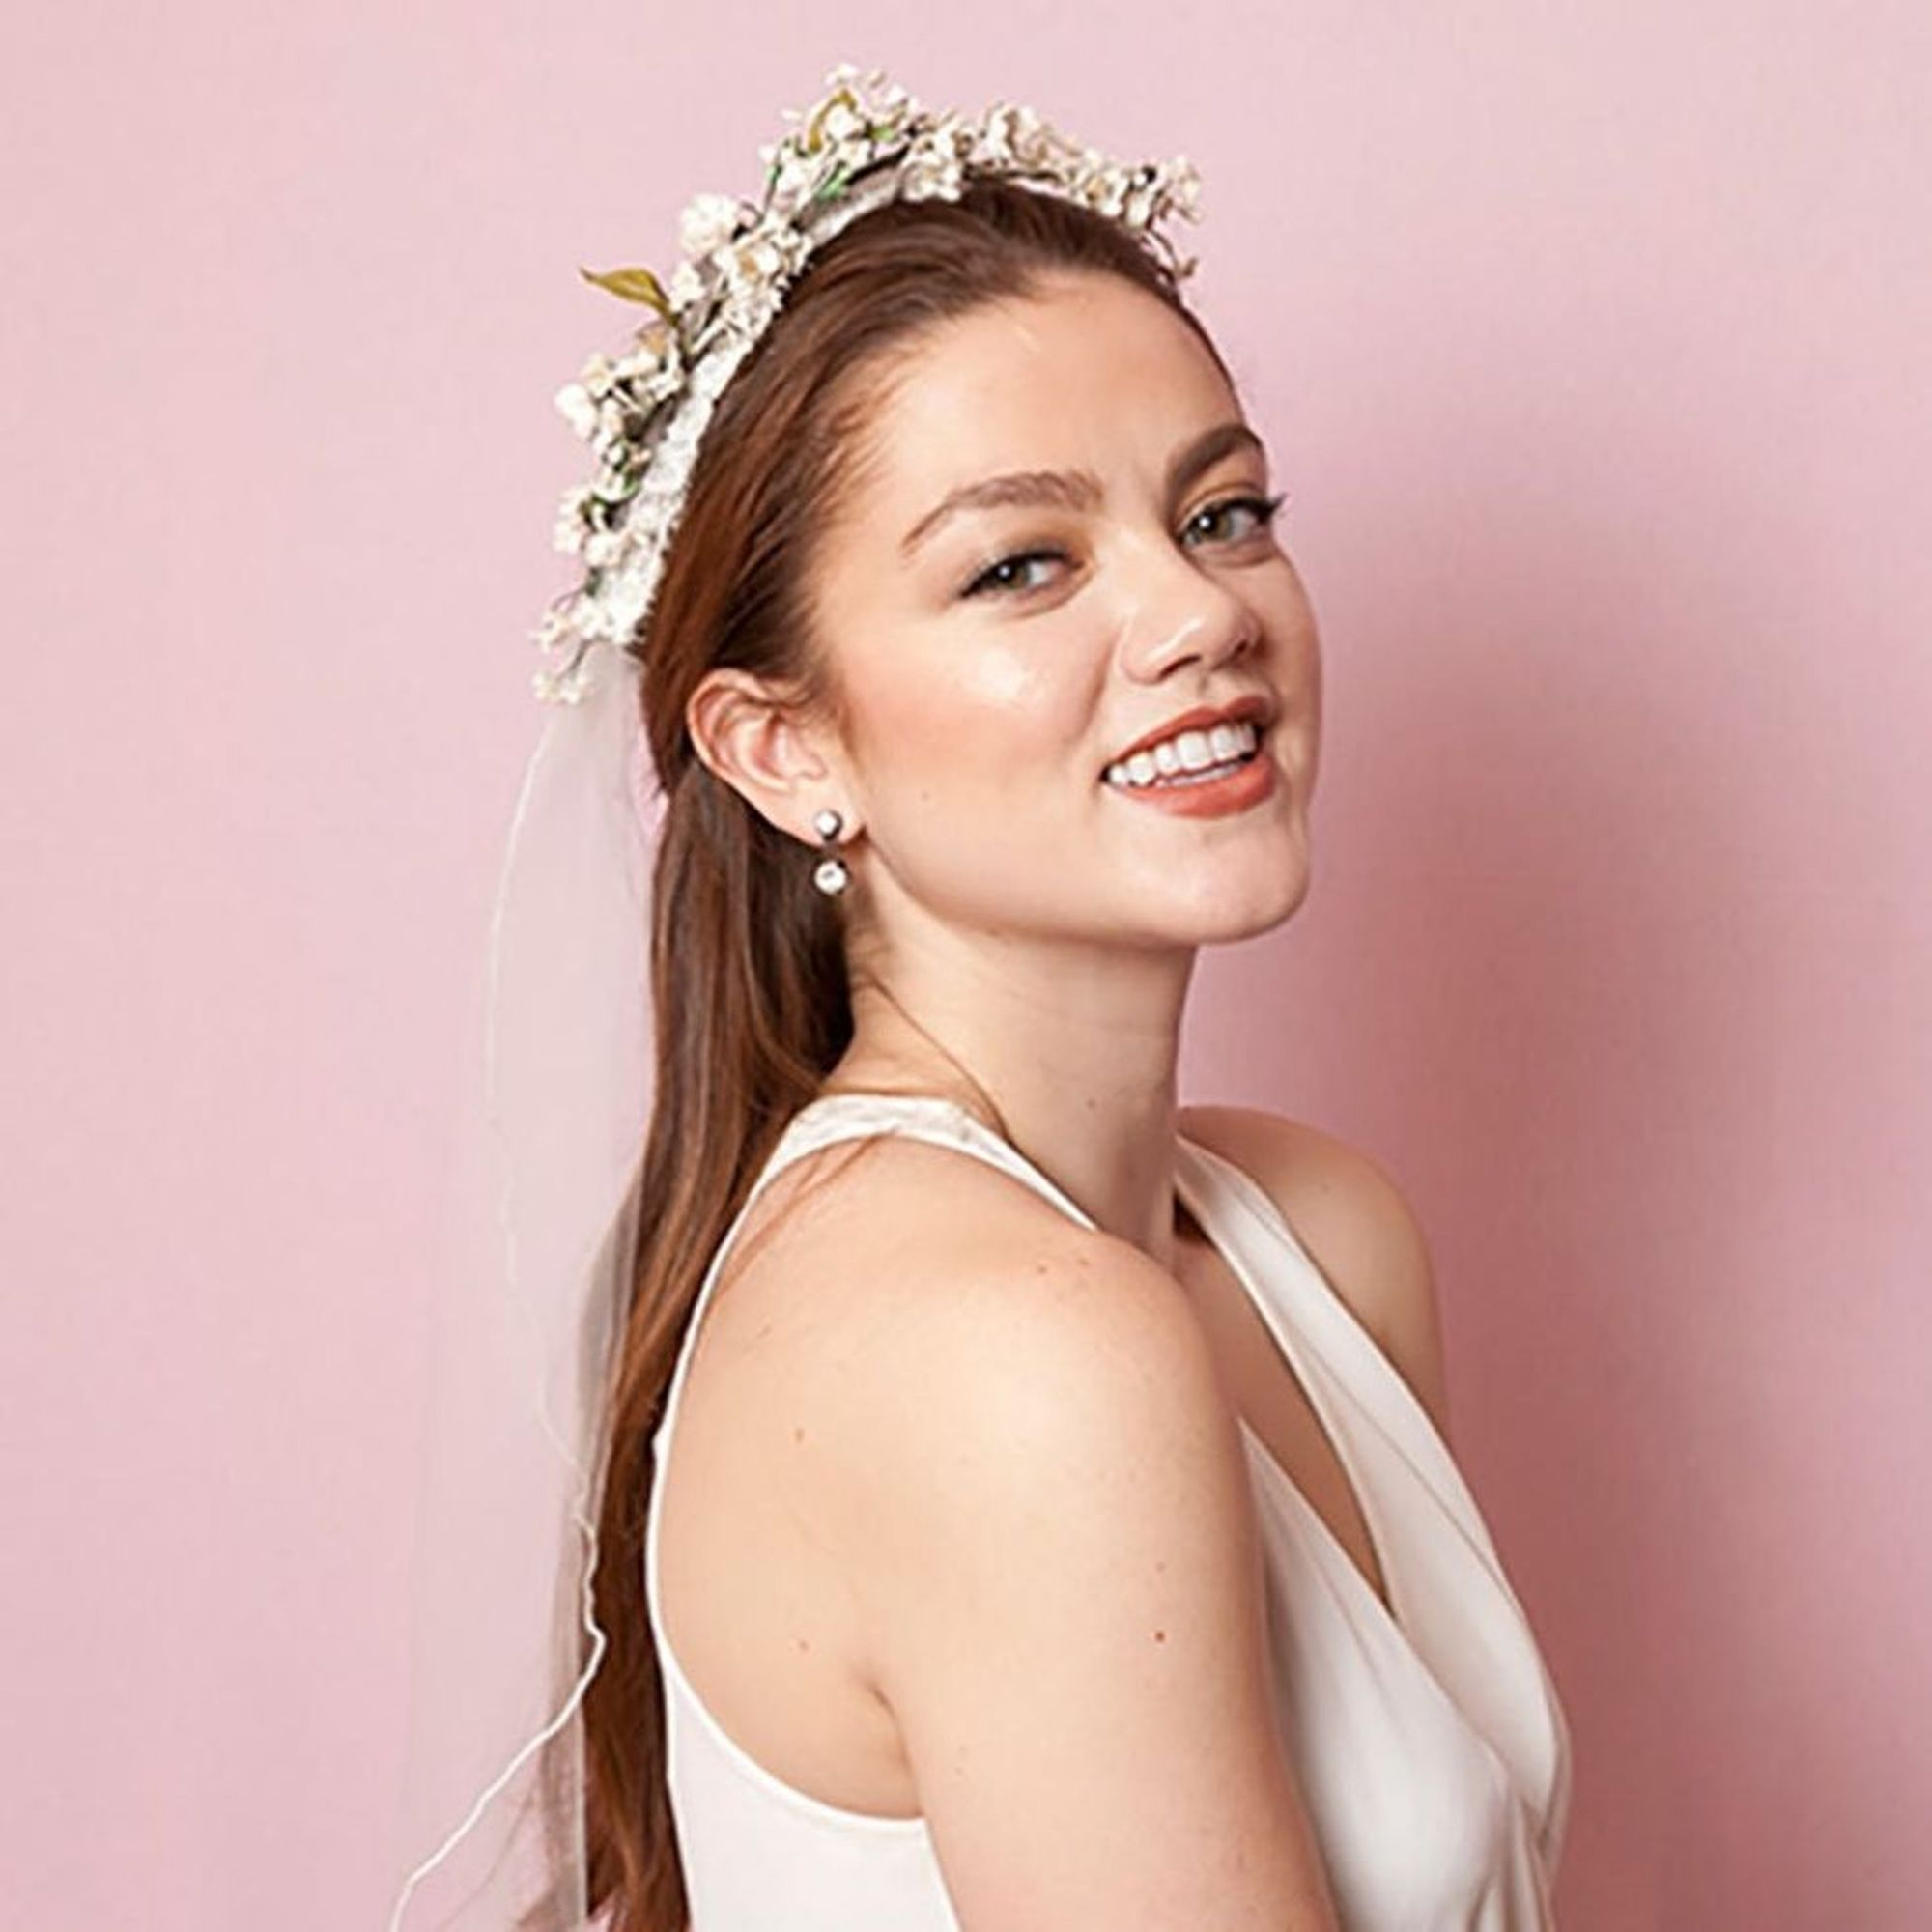 Need Bridal Hair Inspiration We Have You Covered: The Ultimate Hair Hack For The Boho Bride